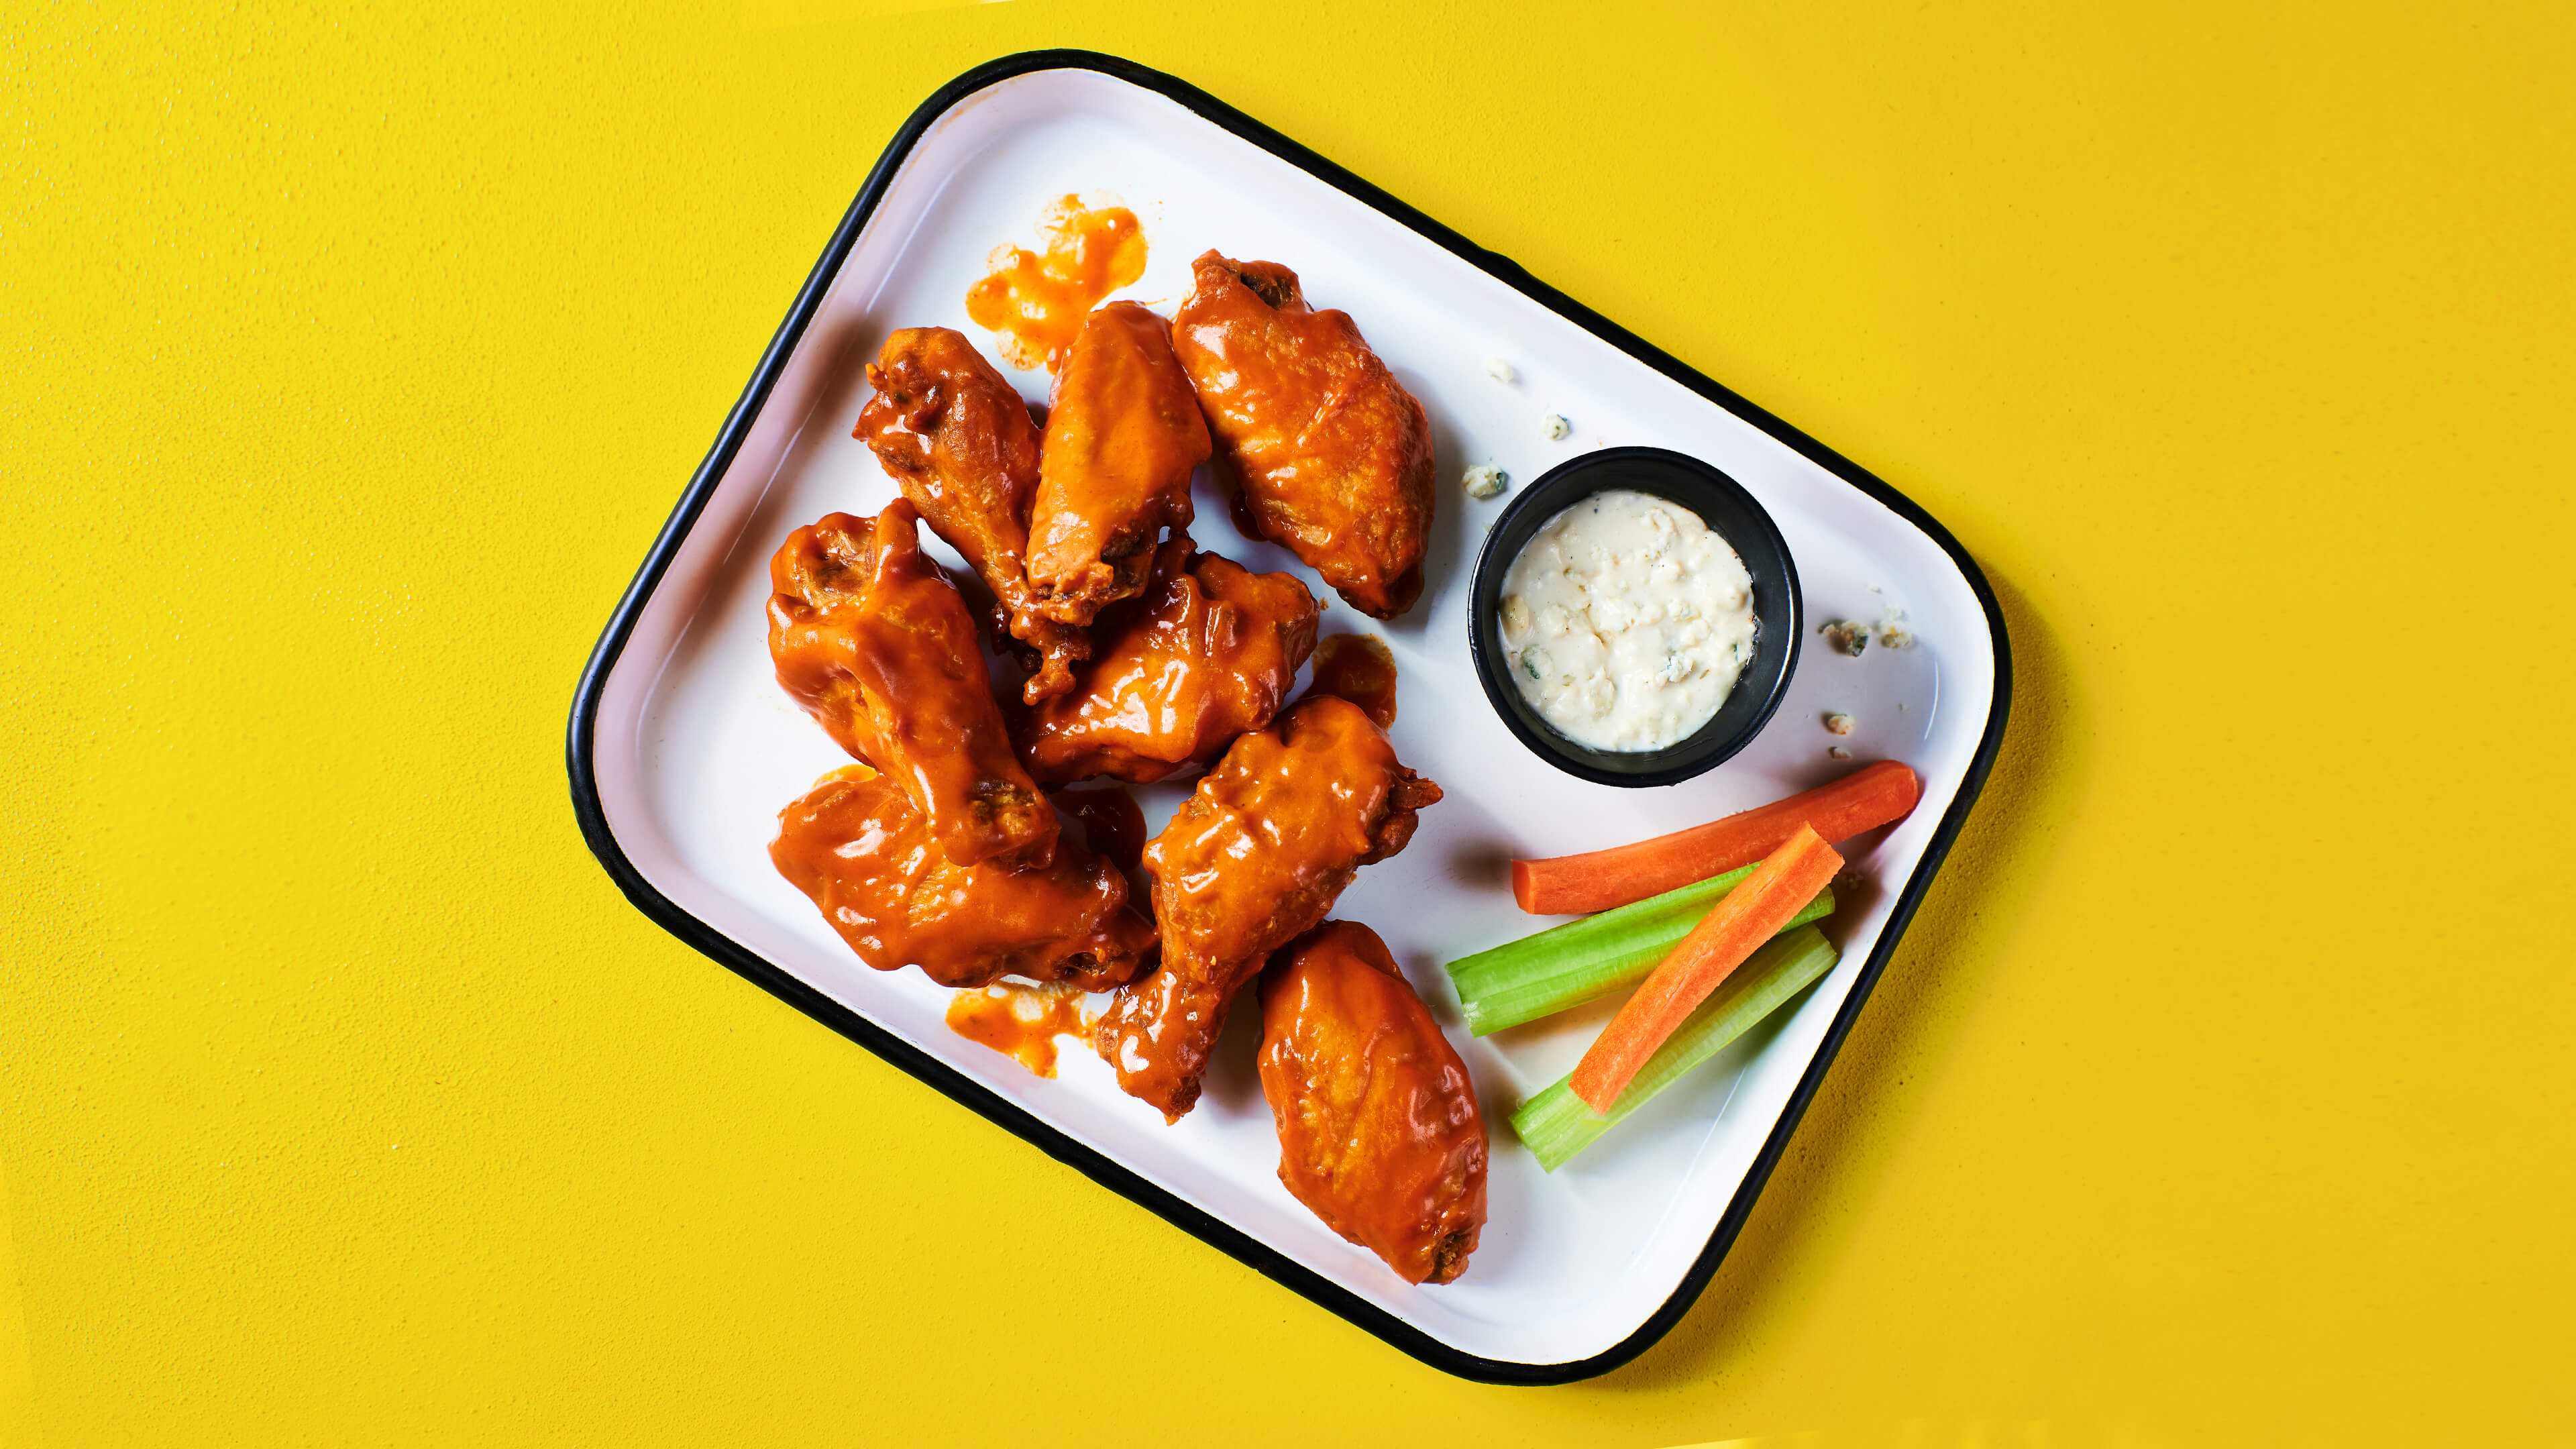 BIGGER BETTER BUFFALO WINGS - Big, juicy, meaty, tender and saucy buffalo wings, served with your choice of ranch or blue cheese, and crunchy celery and carrots for dipping.